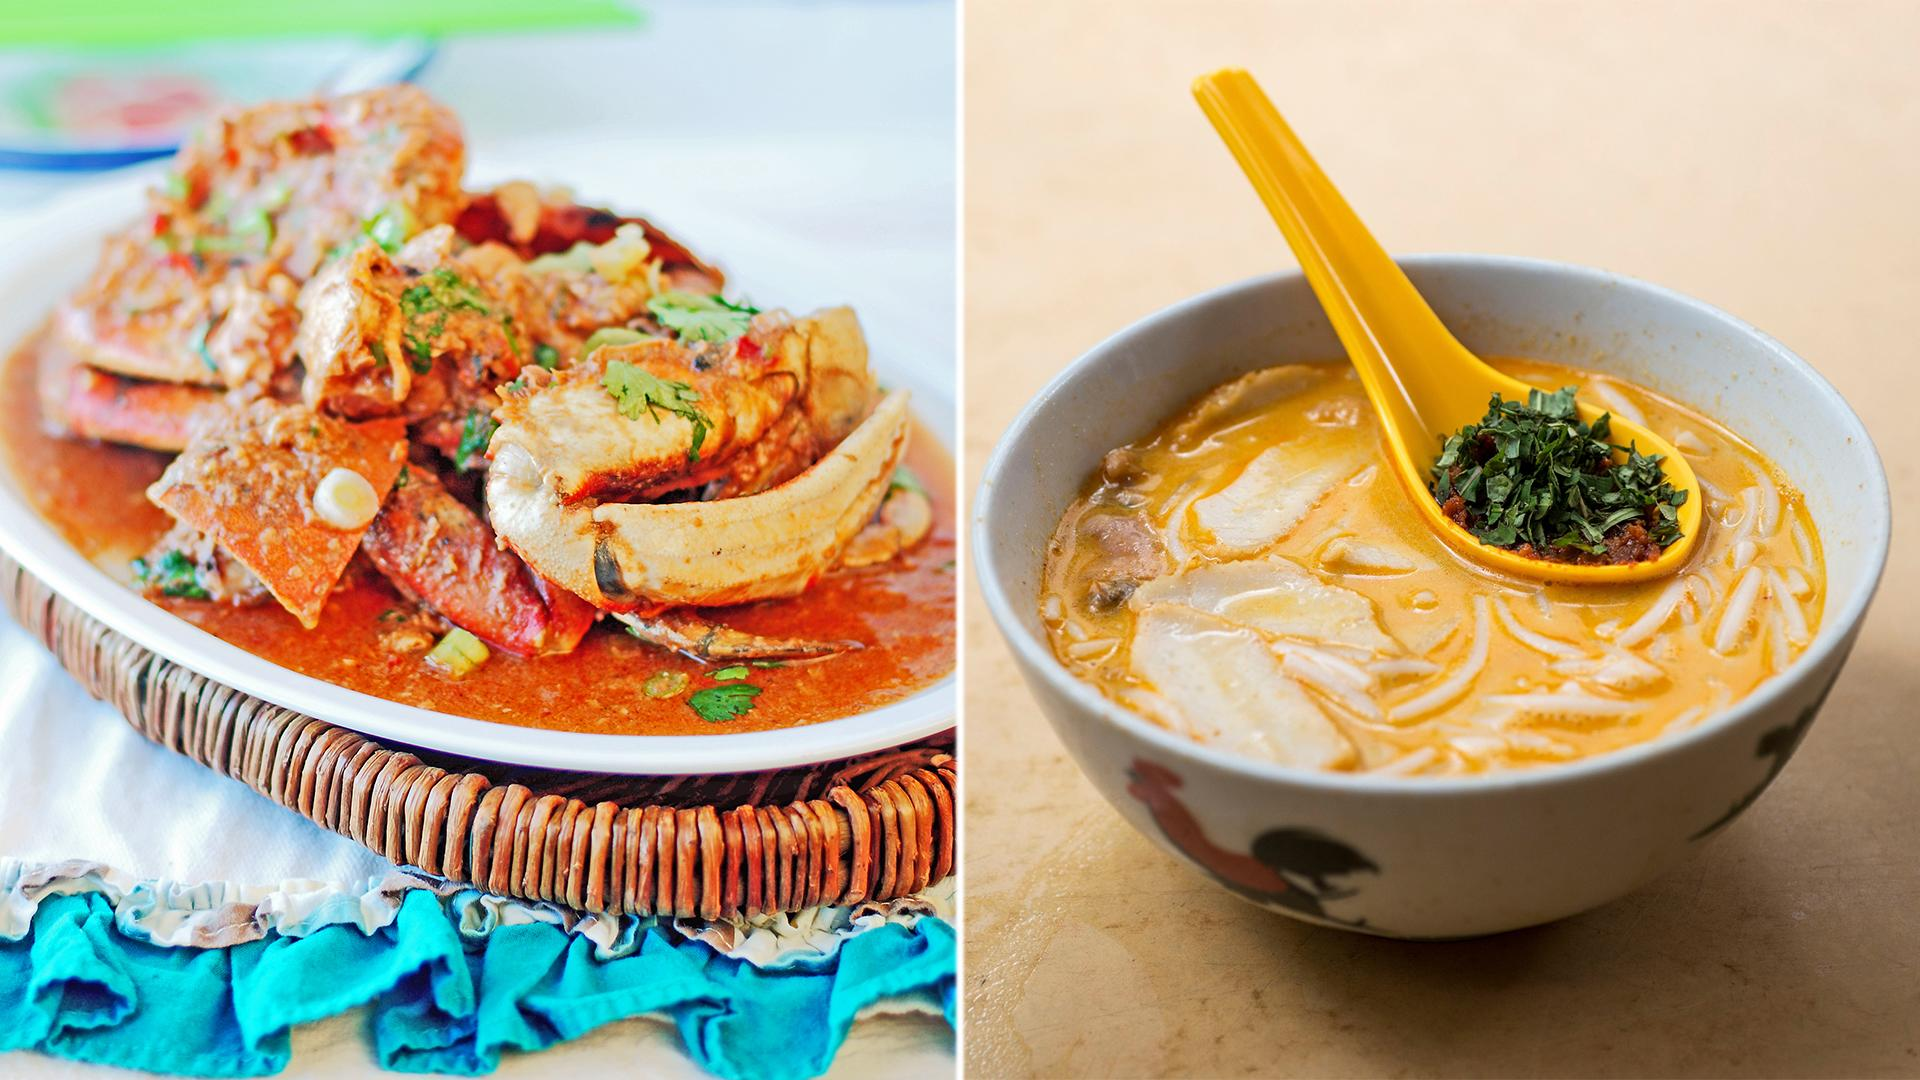 Singapore's chilli crab, Kuala Lumpur's laksa among Lonely Planet's top food experiences